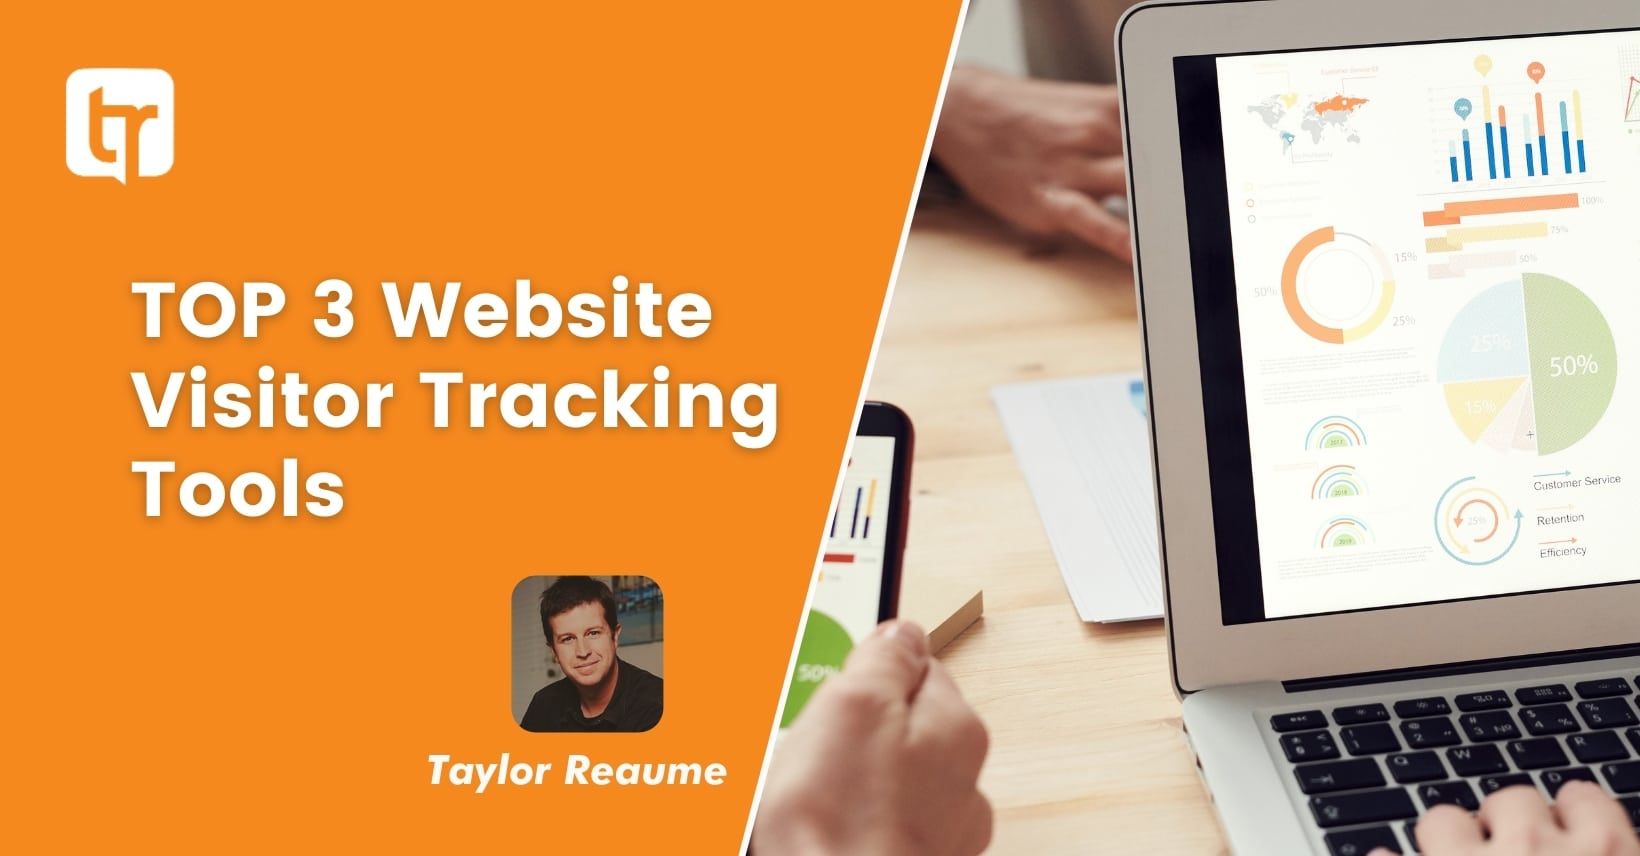 Top 3 Website Visitor Tracking Tools